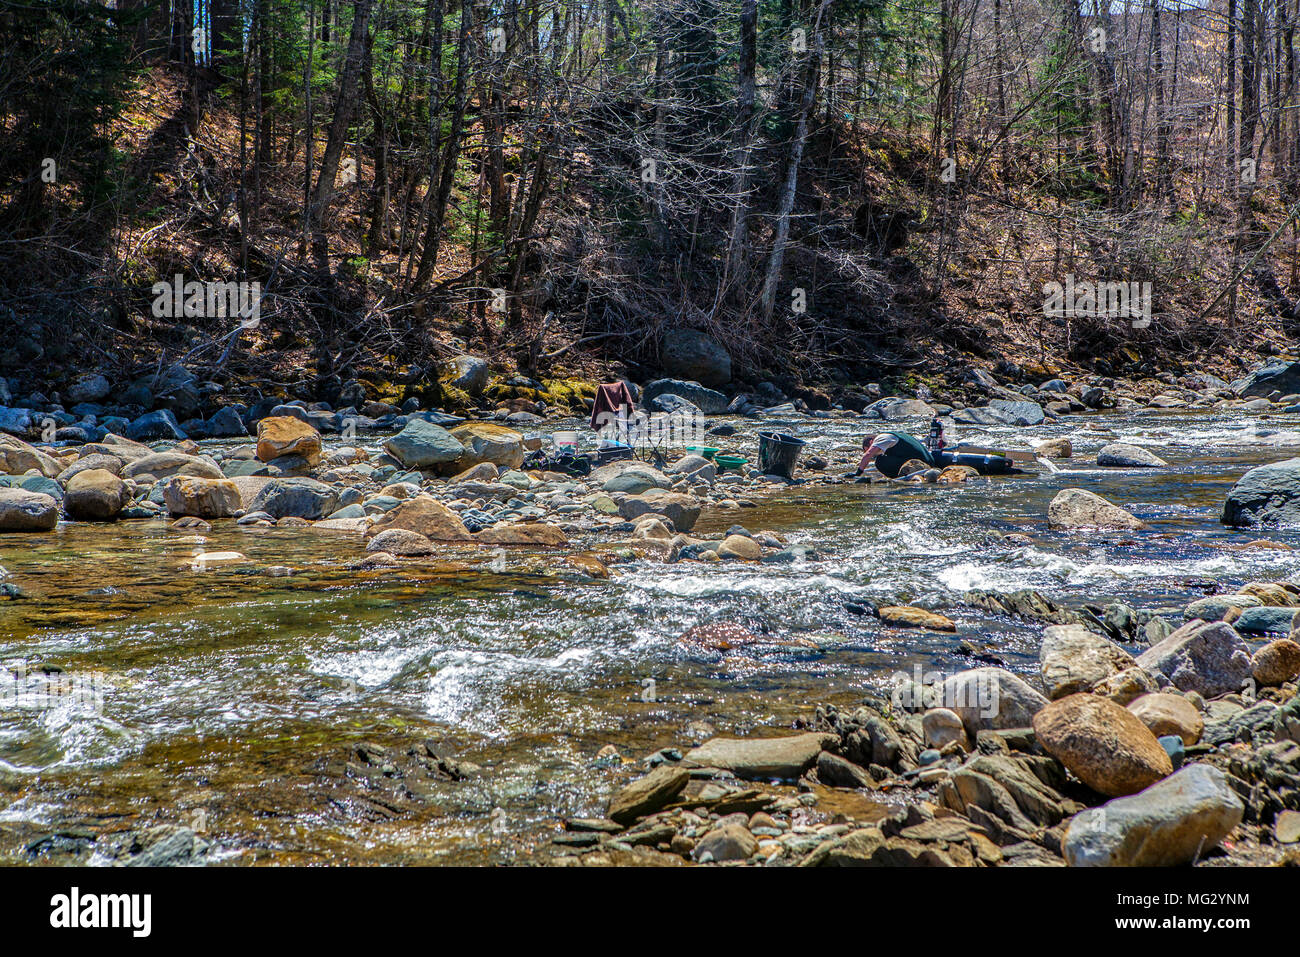 A recreational prospector uses a dredge to find gold in the Wild Ammonoosuc River at Swiftwater, New Hampshire, United States. - Stock Image